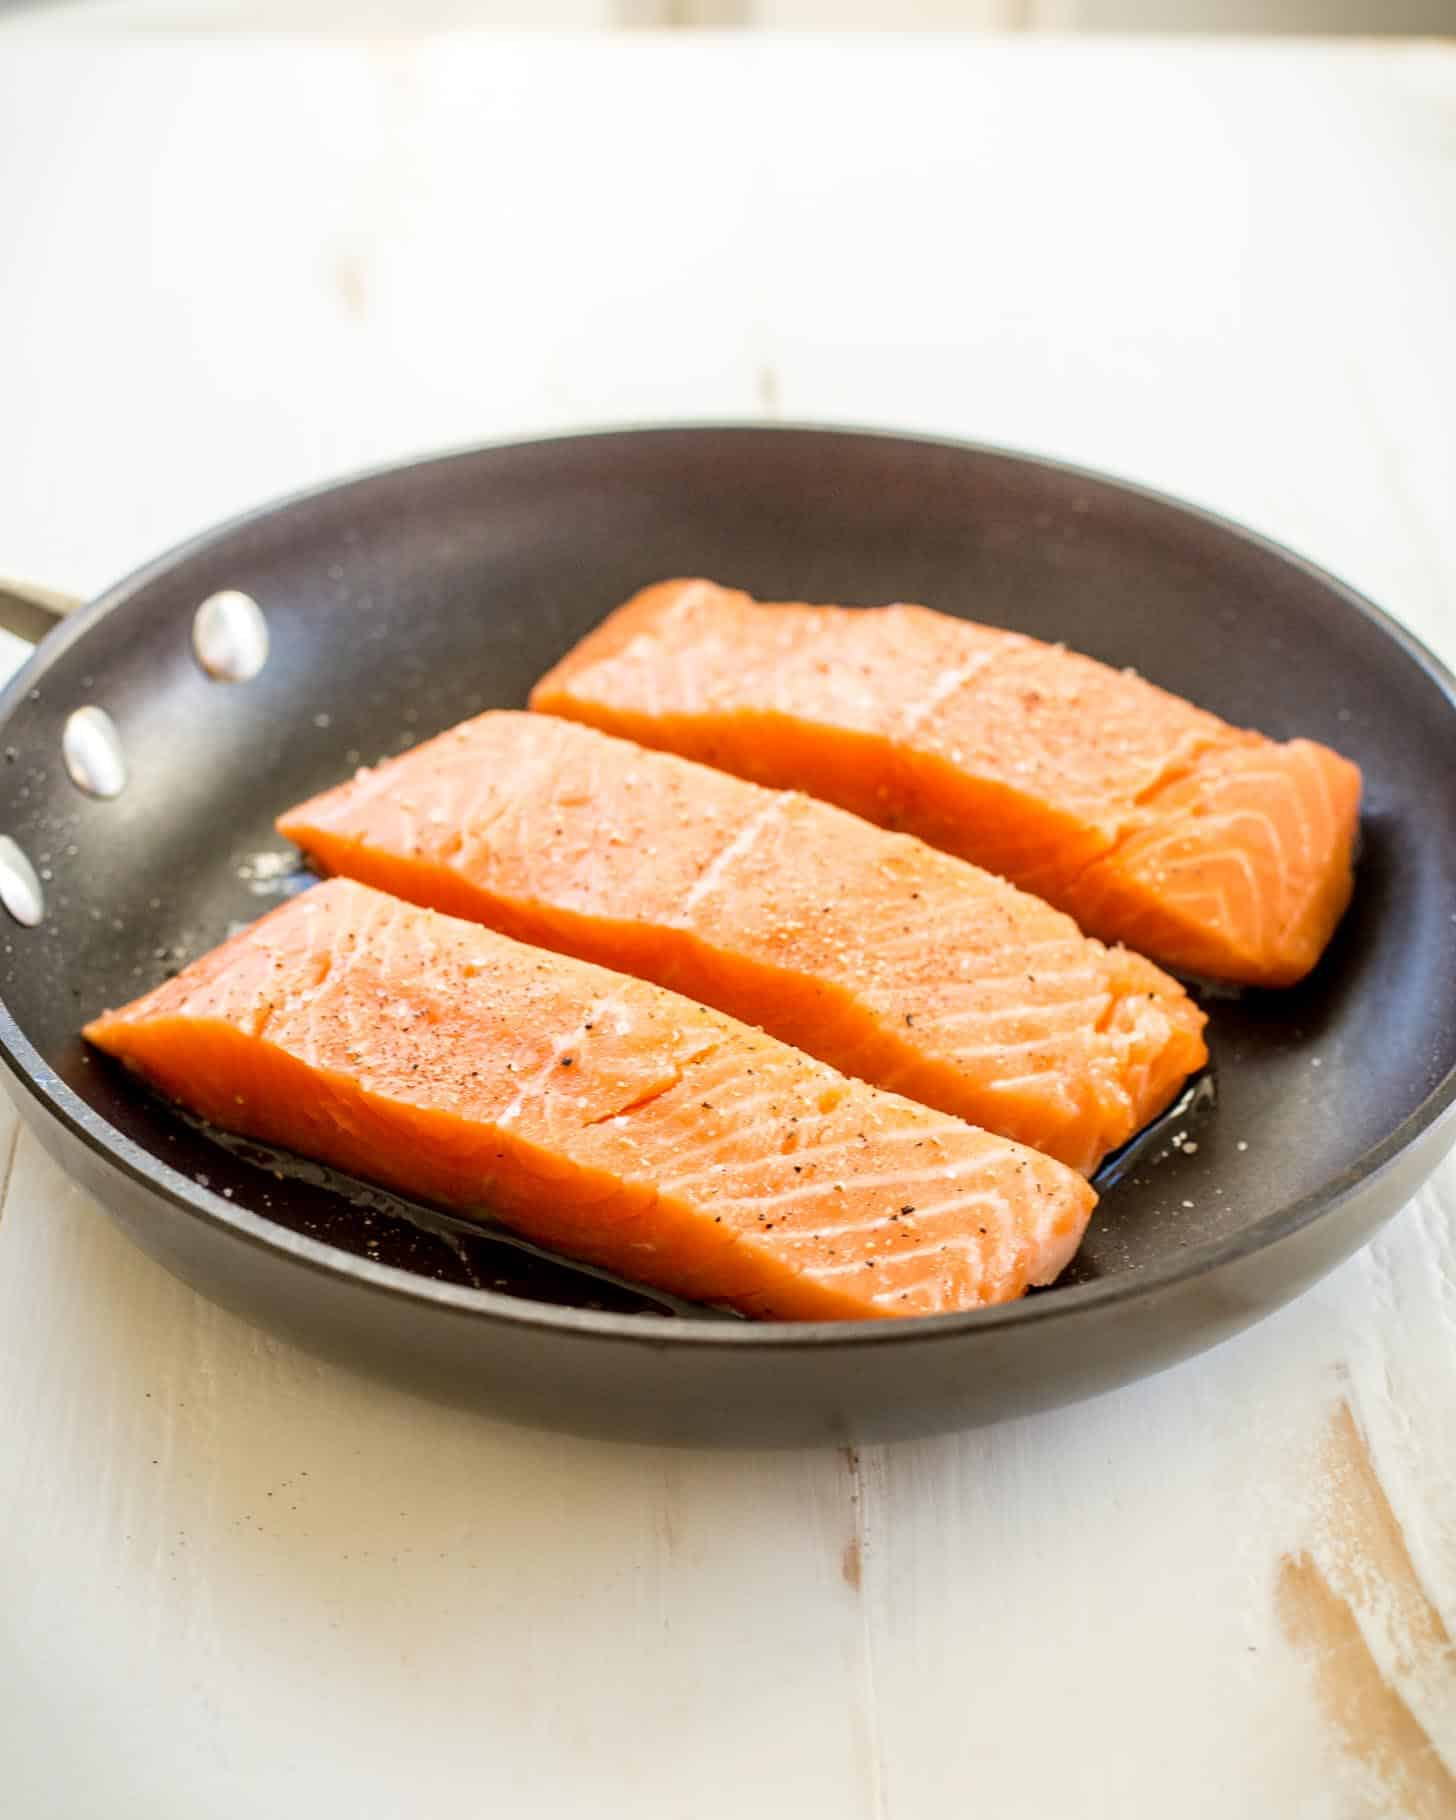 pan searing salmon in a non-stick skillet